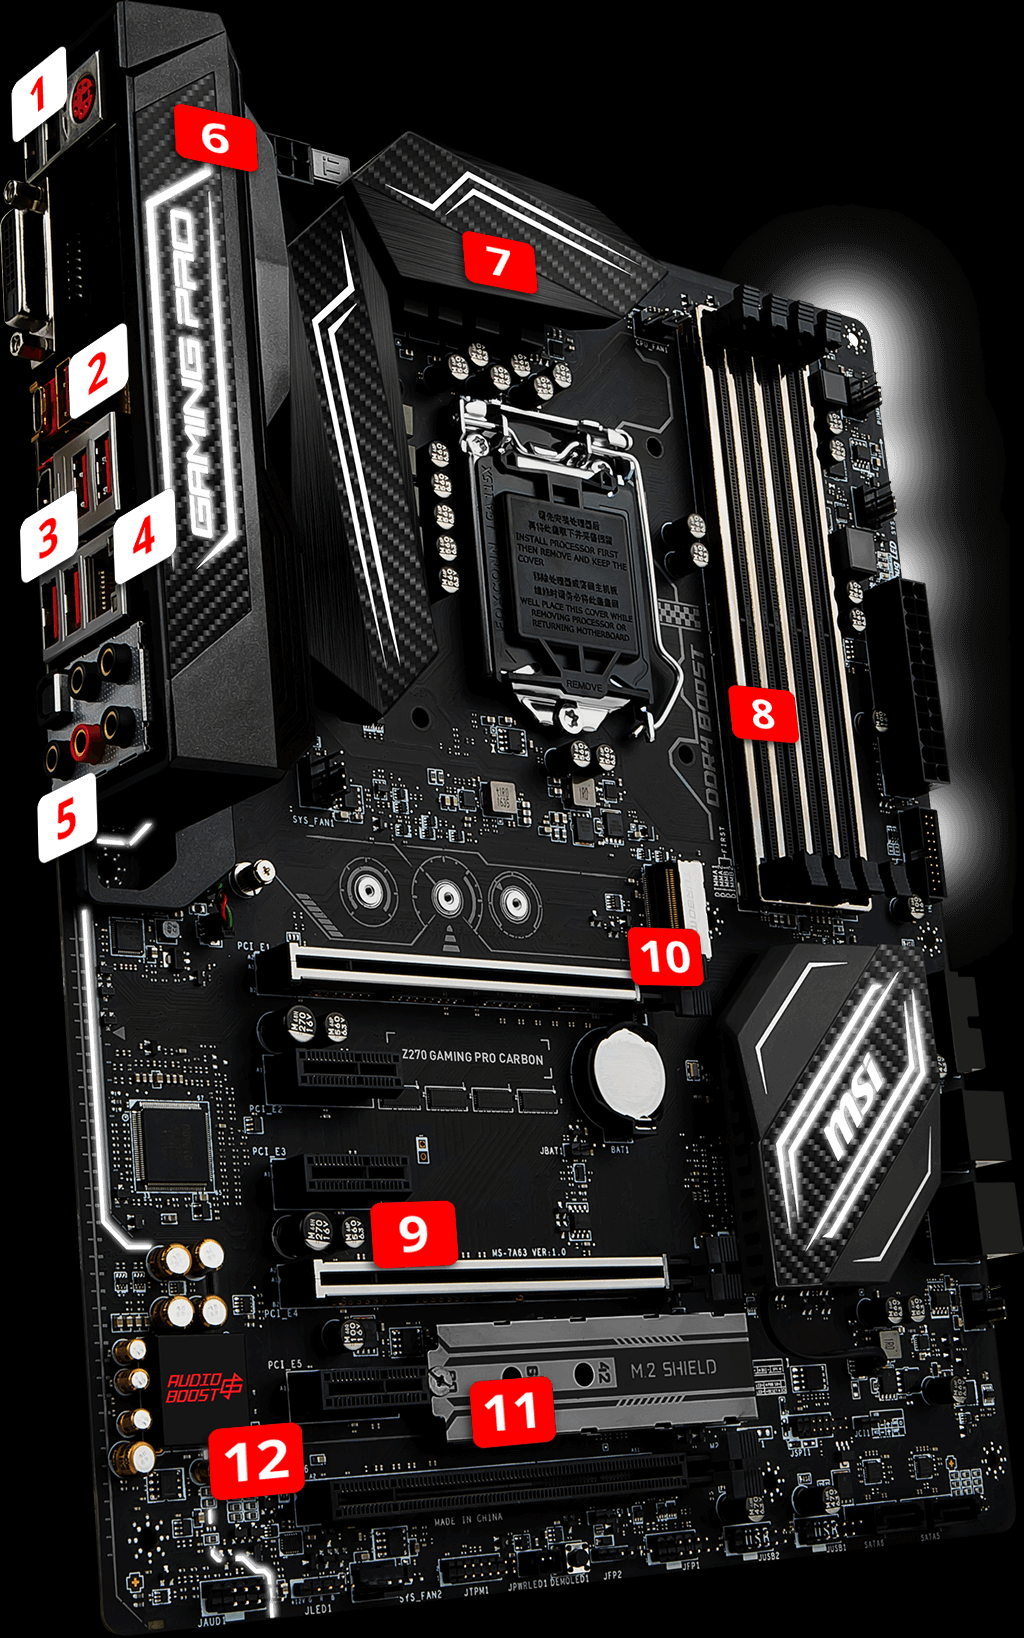 Msi Z270 Gaming Pro Carbon Motherboard Supports 7th Intel Kaby Lake Processors Ddr4 3866 Memory With Intel Z270 Chipset To Provide The Best Vi Nadpisi Raznoe